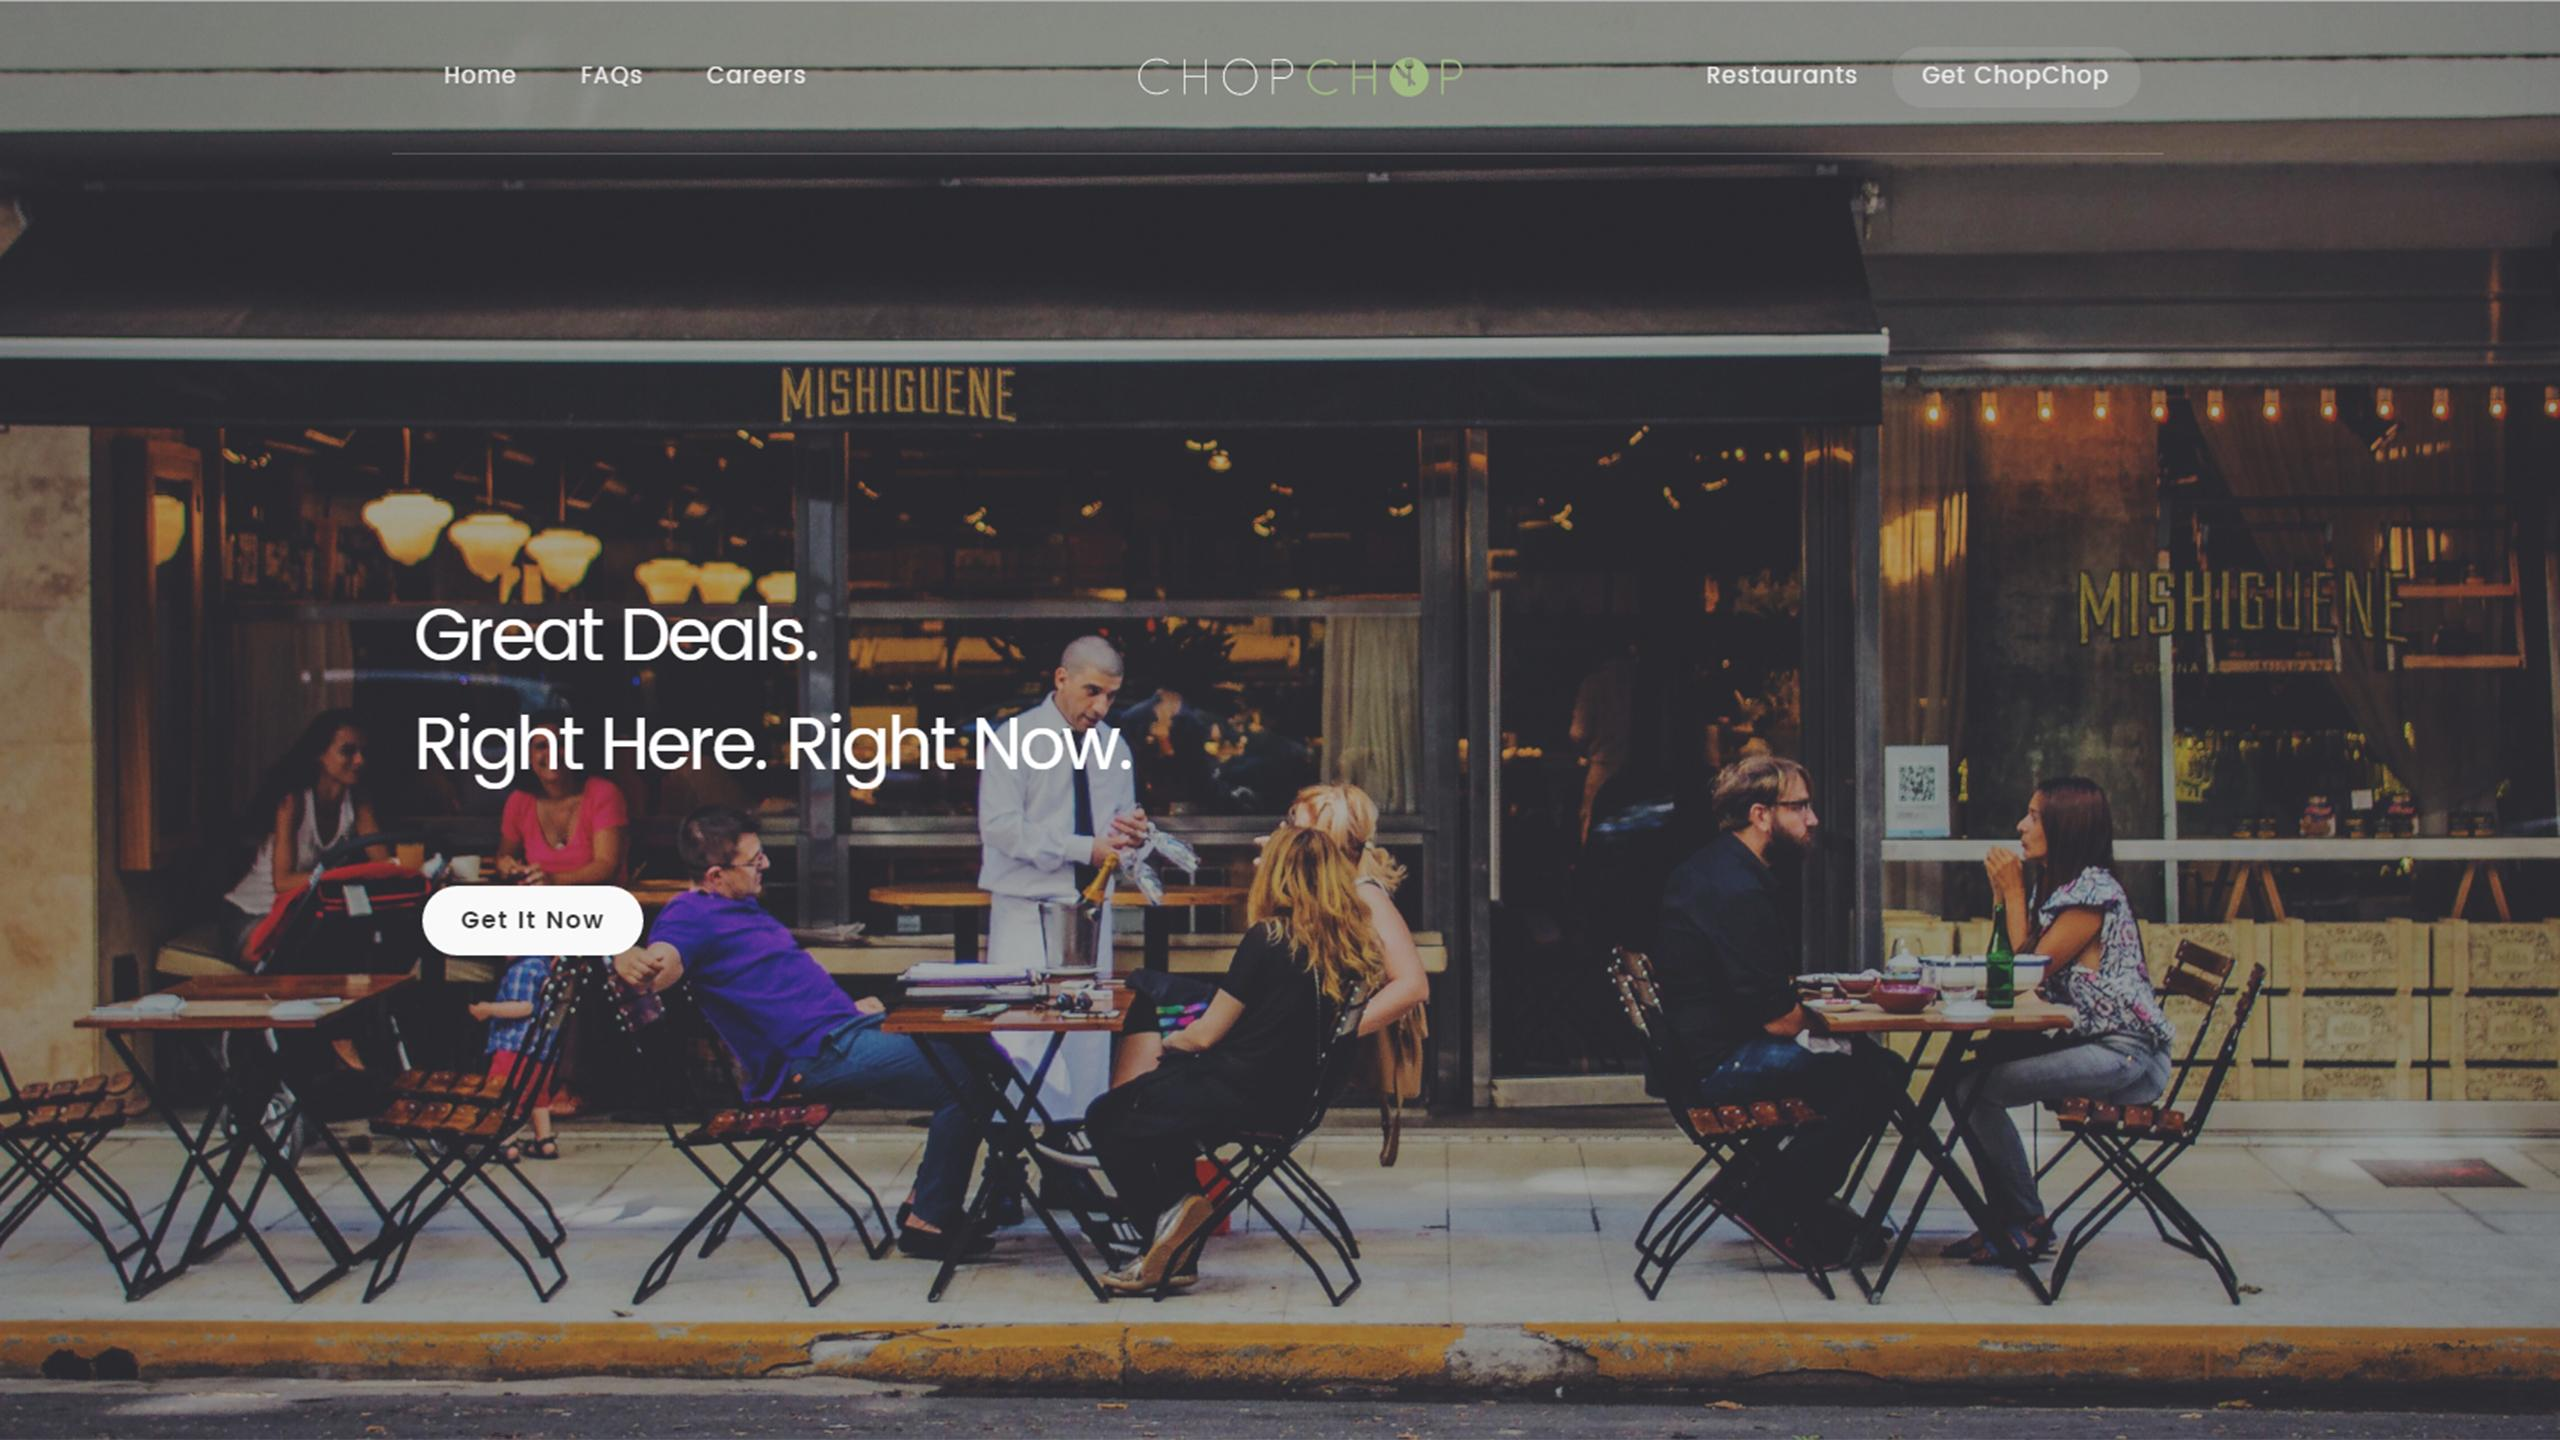 A screenshot of ChopChop's homepage shows several people sitting on a restaurant patio.